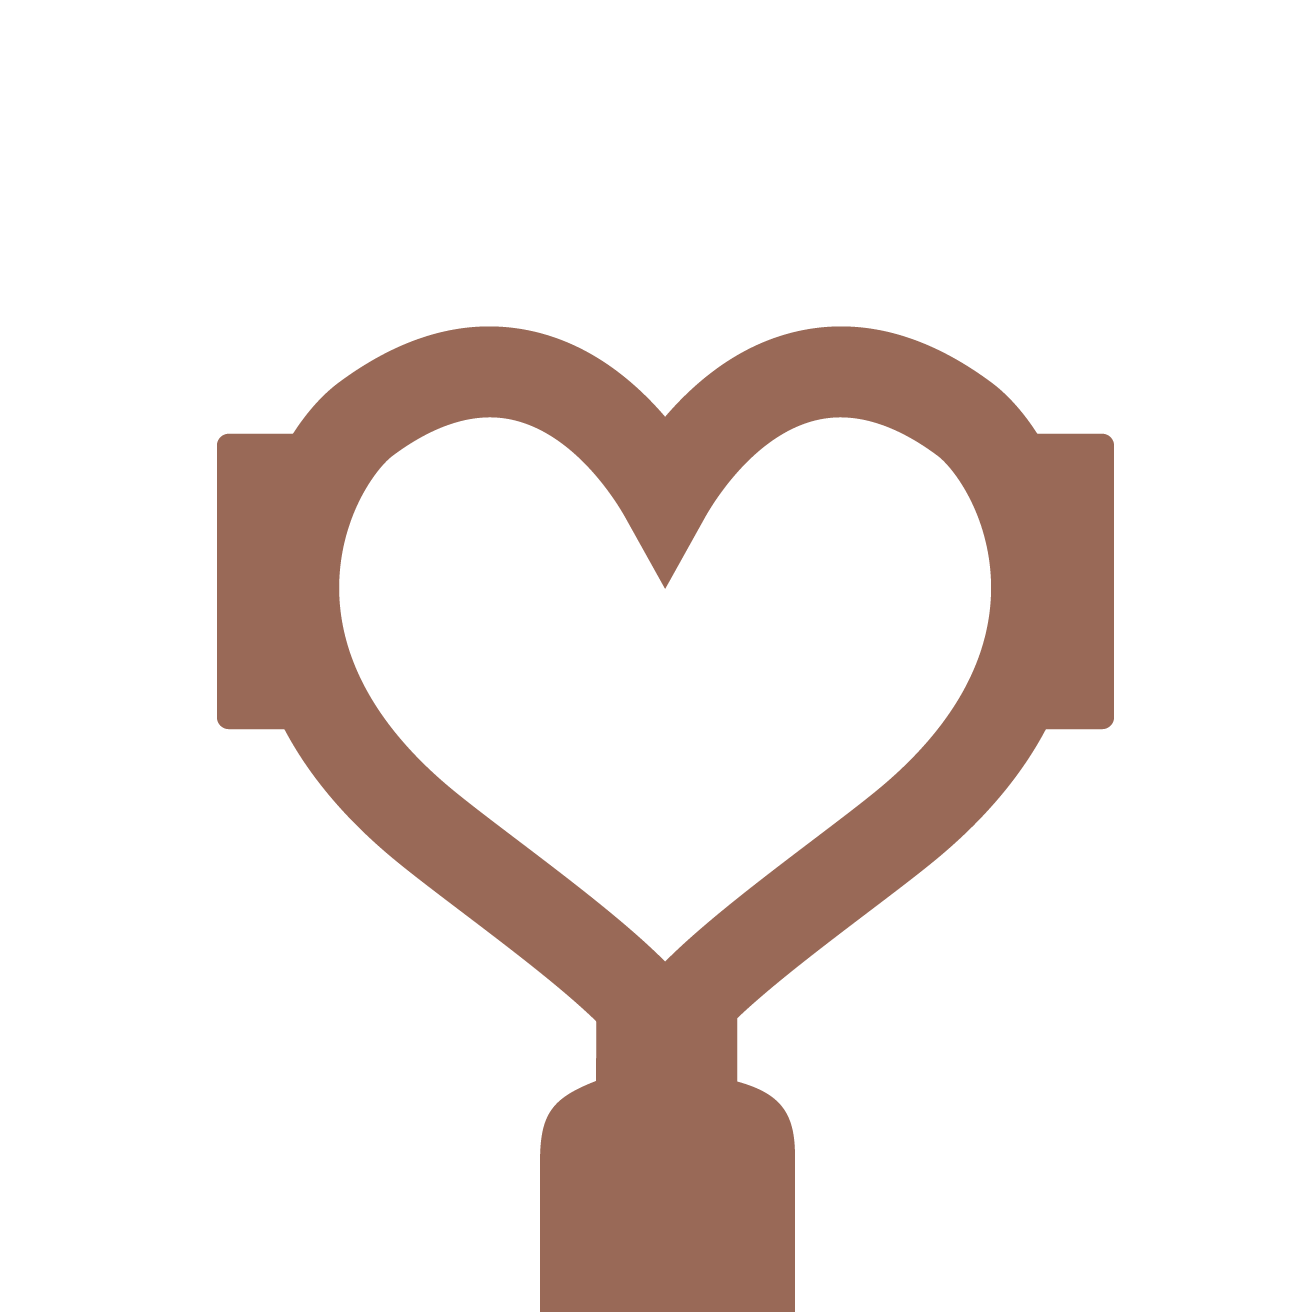 Moccamaster Technivorm KBG741 AO Midnight Blue